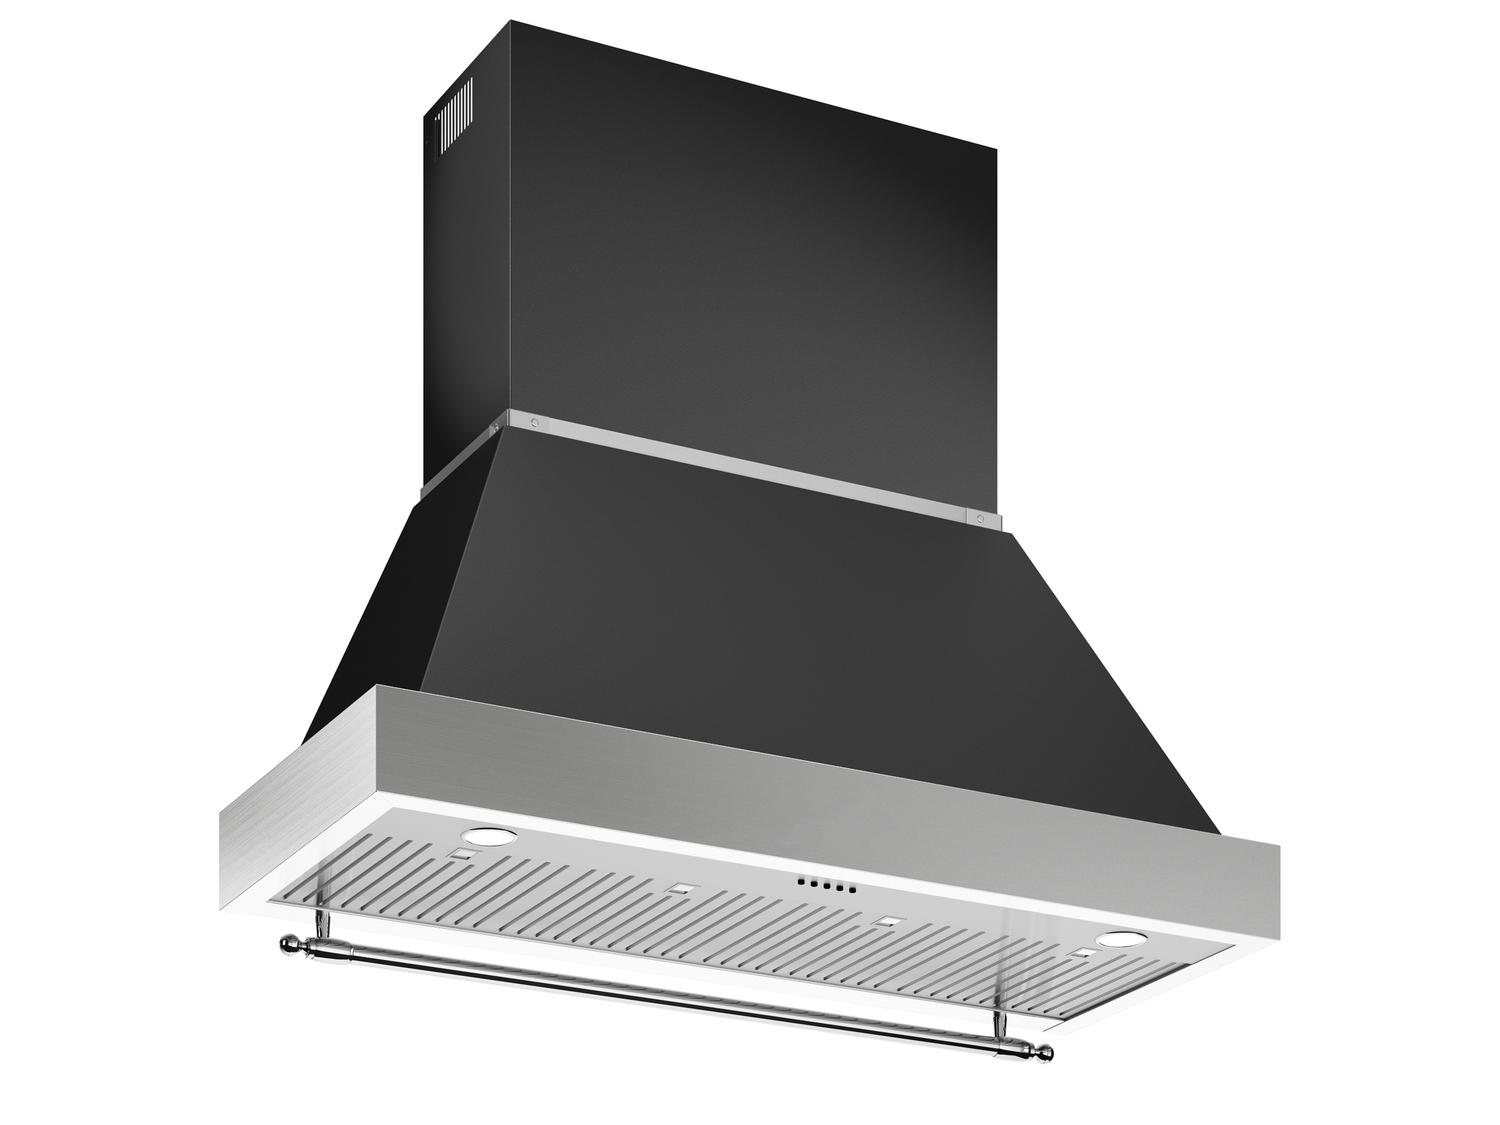 Bertazzoni48 Wallmount Canopy And Base Hood, 1 Motor 600 Cfm Nero Matt